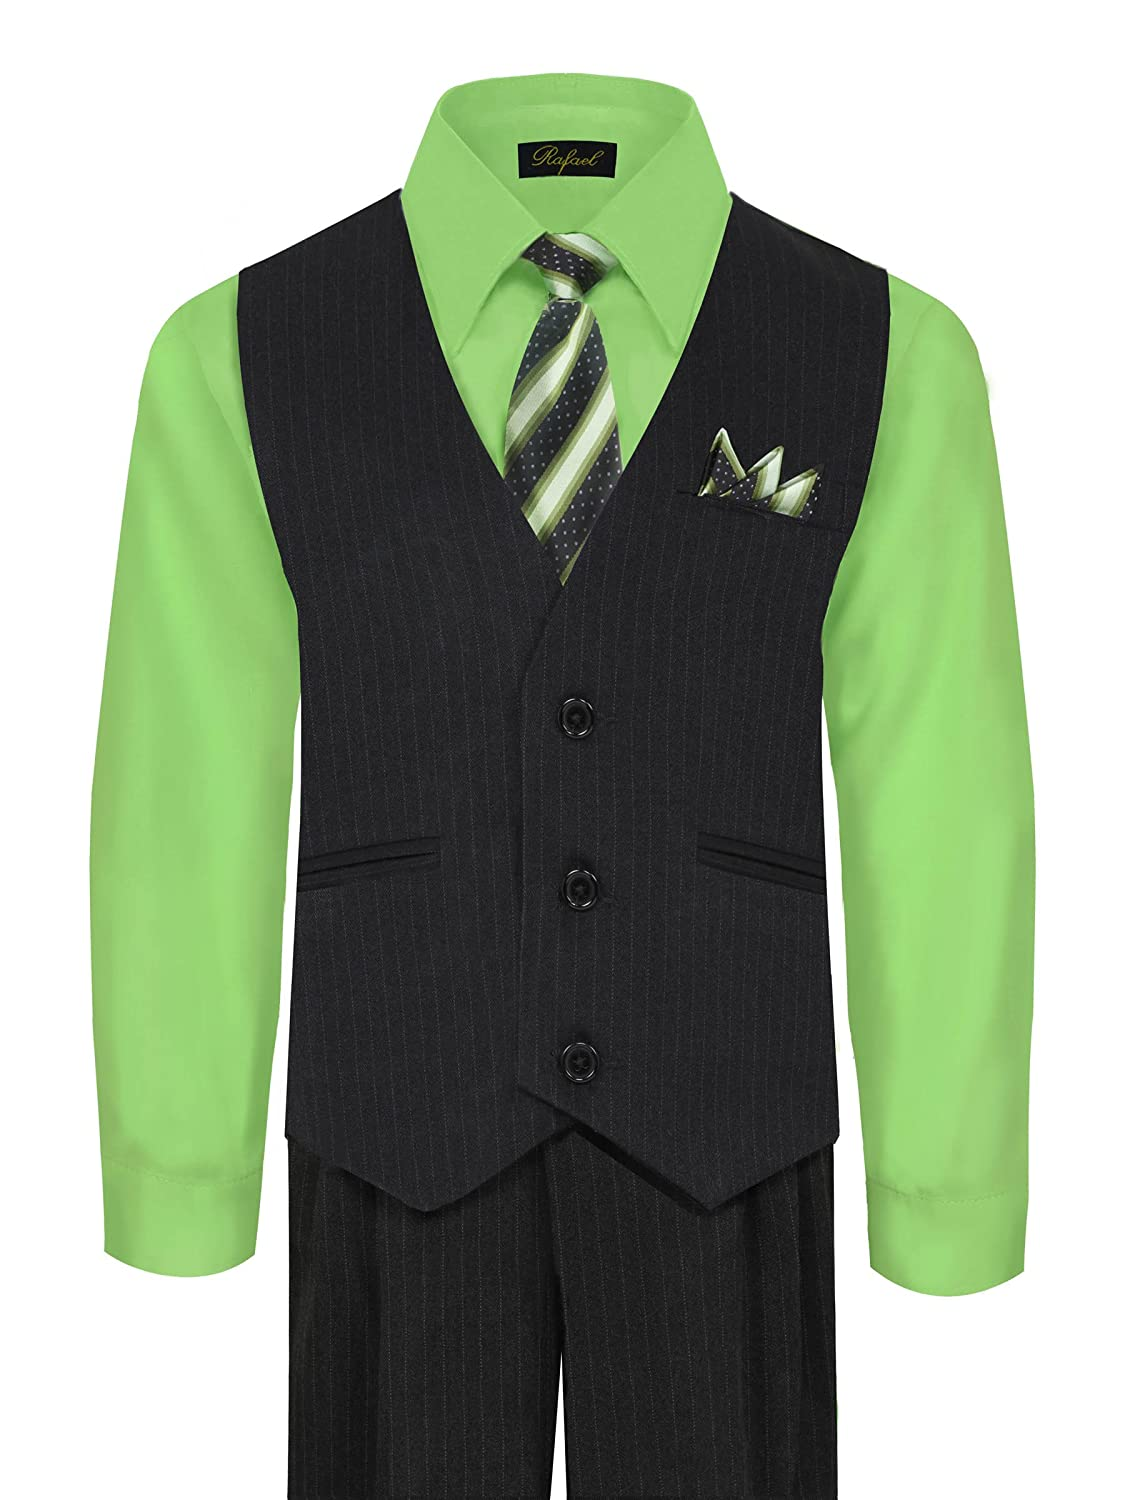 Boy's Vest and Pant Set, Includes Shirt, Tie and Hanky - Many Colors Available Boy' s Vest and Pant Set